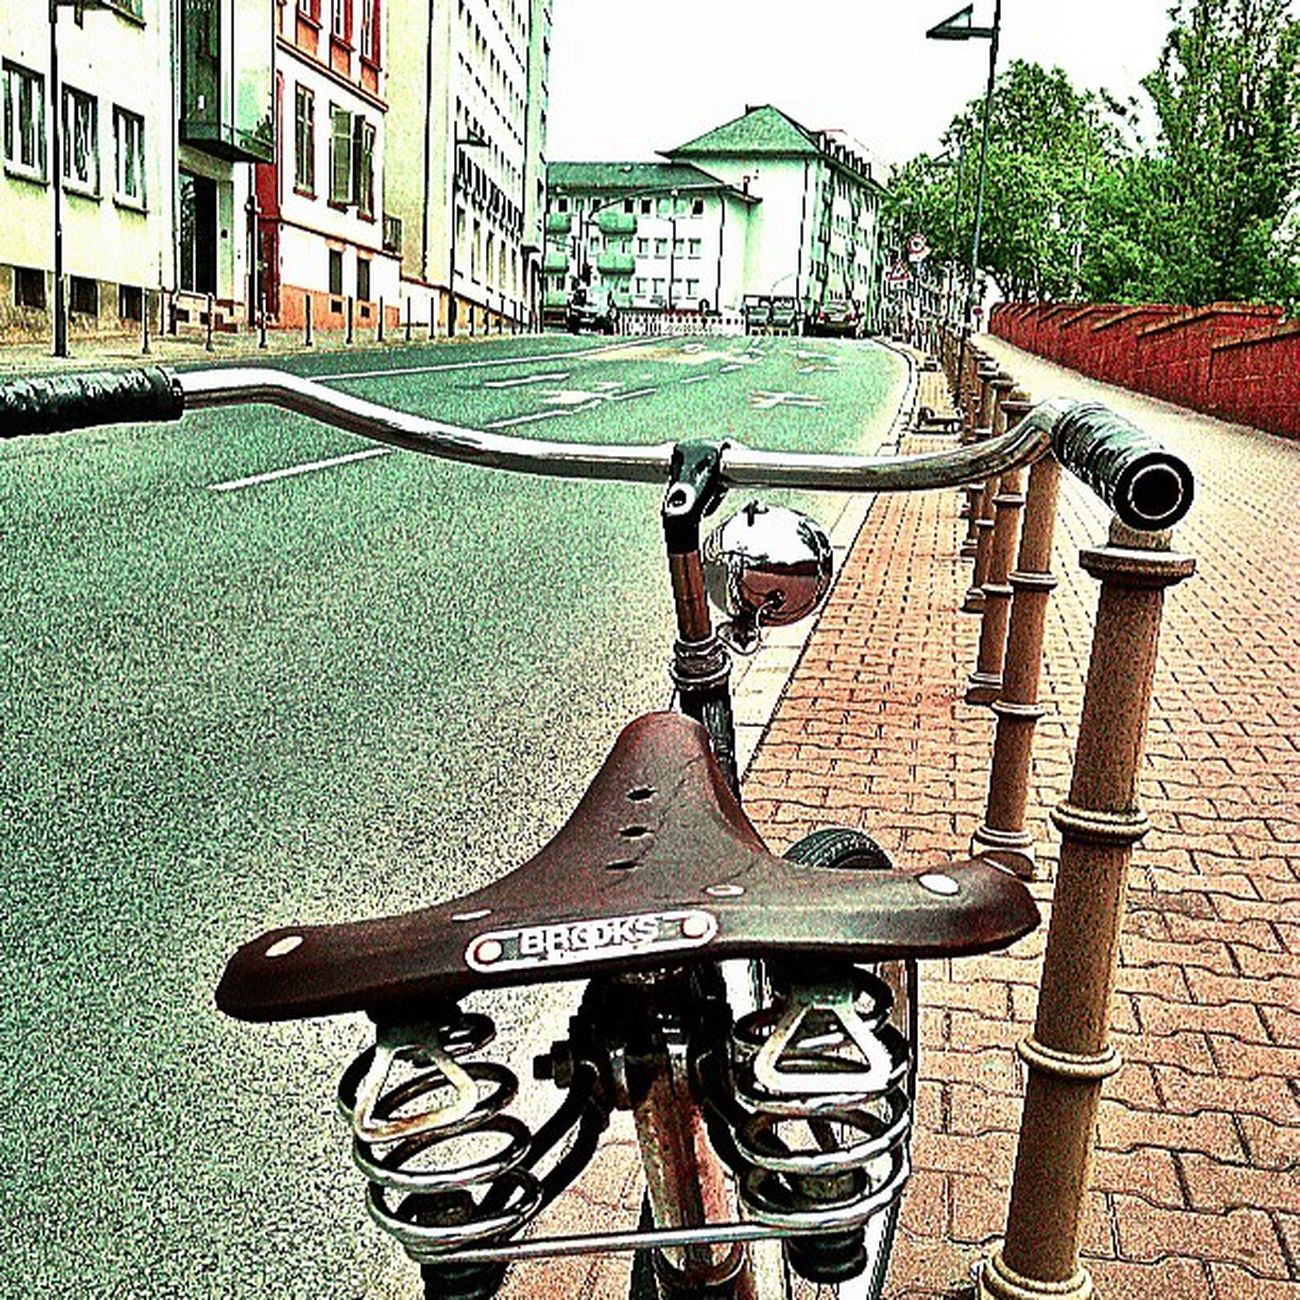 Bikegang Bicycle Bike Photography coolpic angle vintagebike oldbikes oldtown classicbikes beachcruiser streets statigram igdaily instaphotography instahub igser 10speed 100likes webstigram rides cobblestones